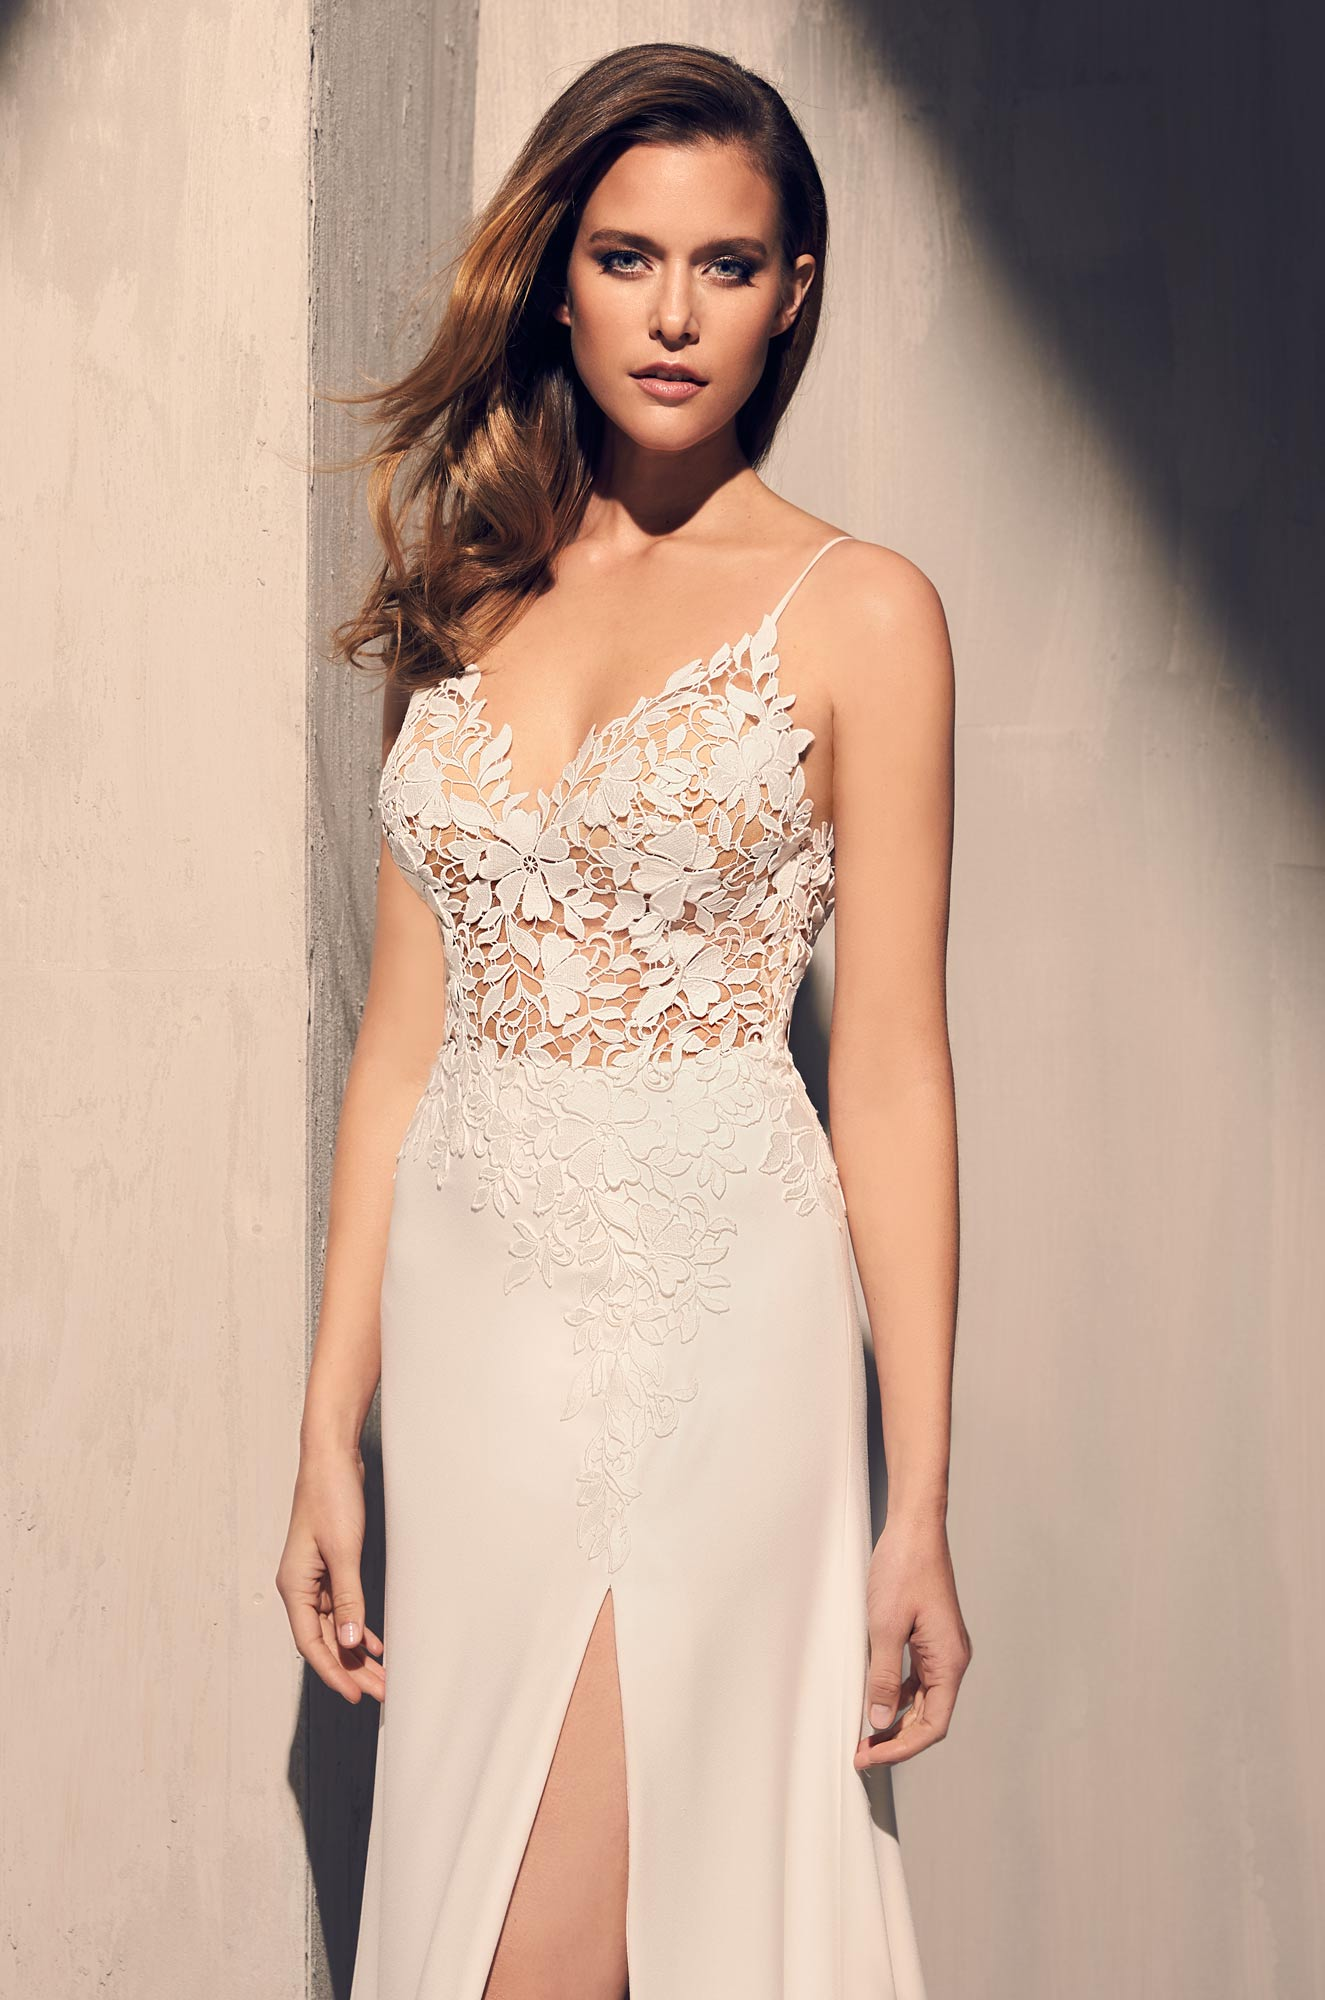 Sheer Floral Bodice Wedding Dress - Style #2208 | Mikaella Bridal